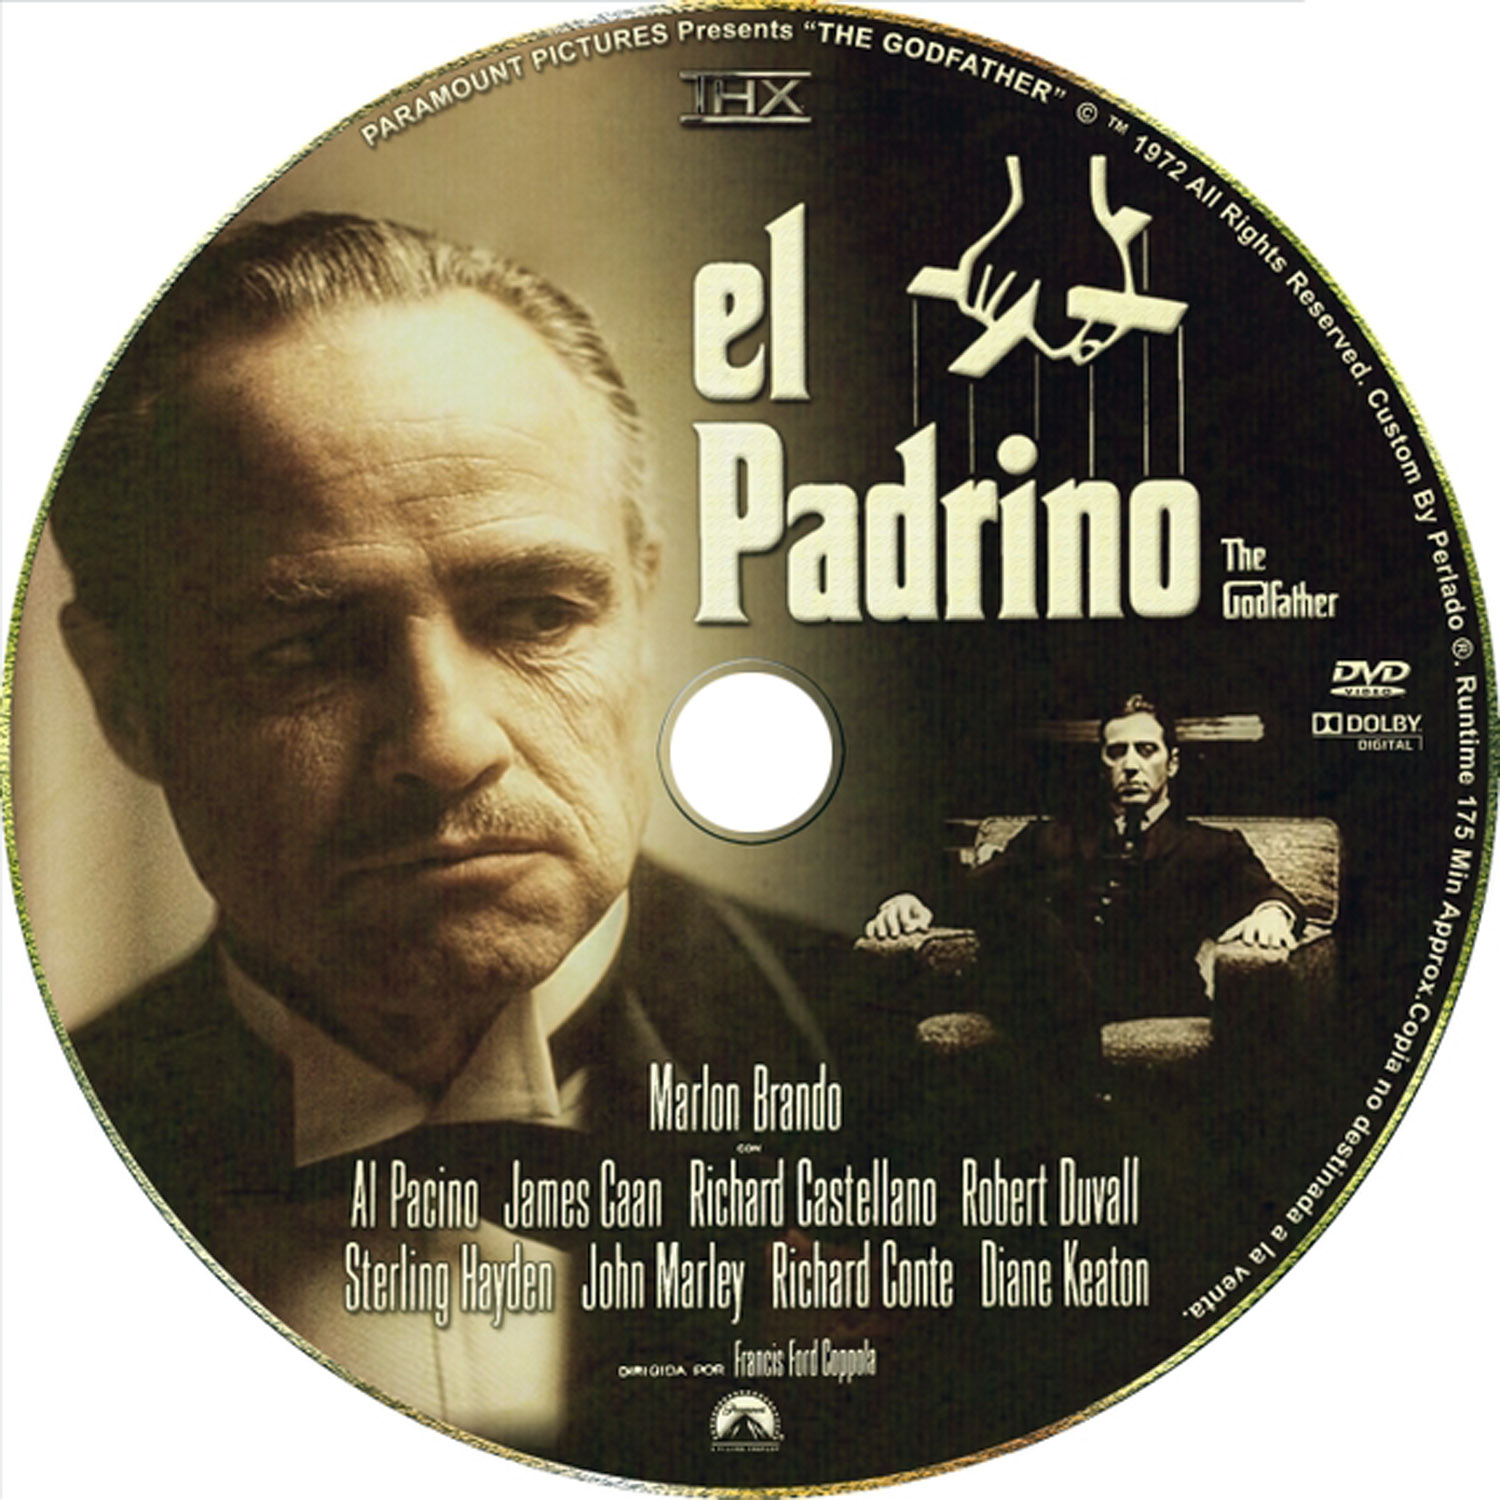 El Padrino The Godfather DVD Label Art